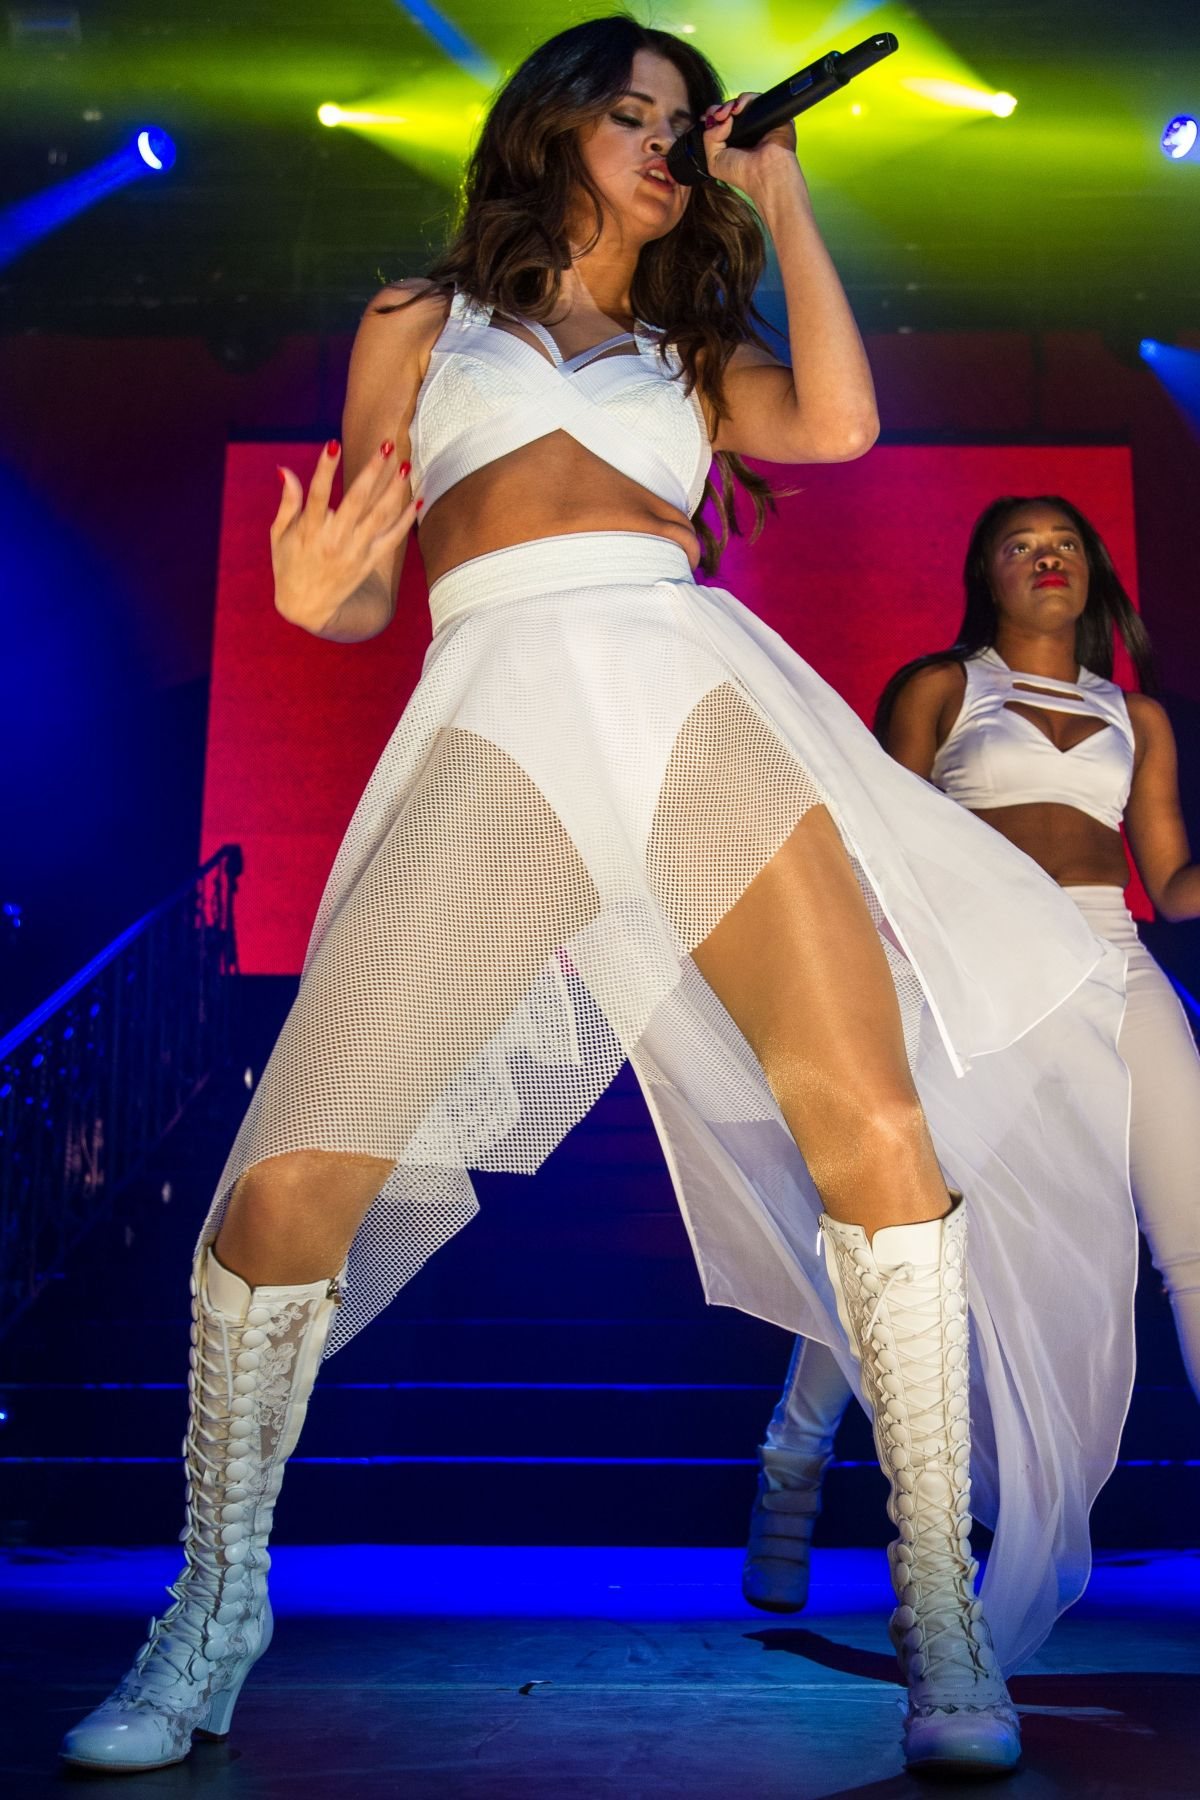 SELENA GOMEZ Performs at 2014 Borderfest in Hidalgo